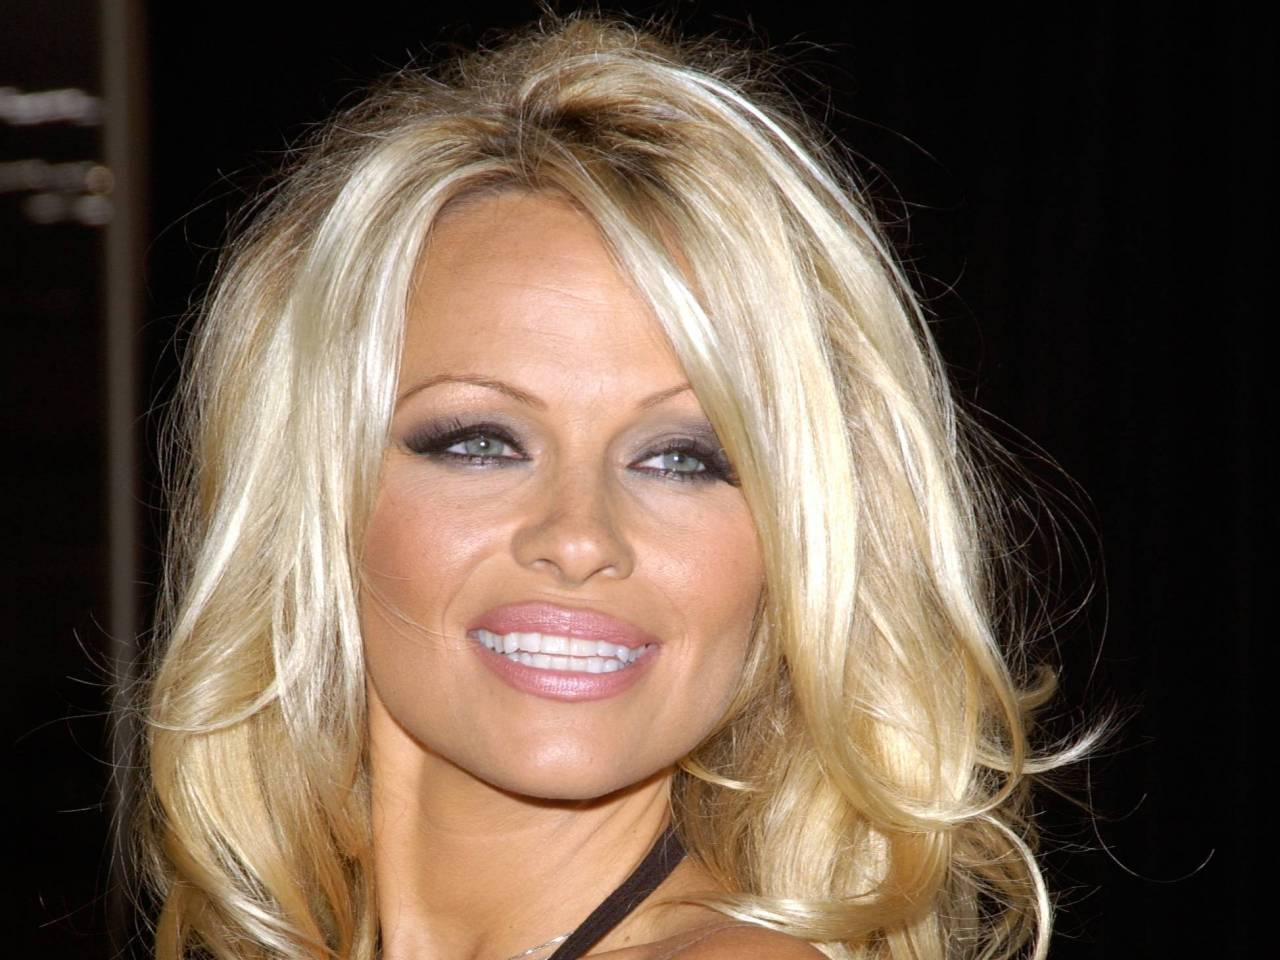 Pamela Anderson earned a  million dollar salary, leaving the net worth at 4 million in 2017